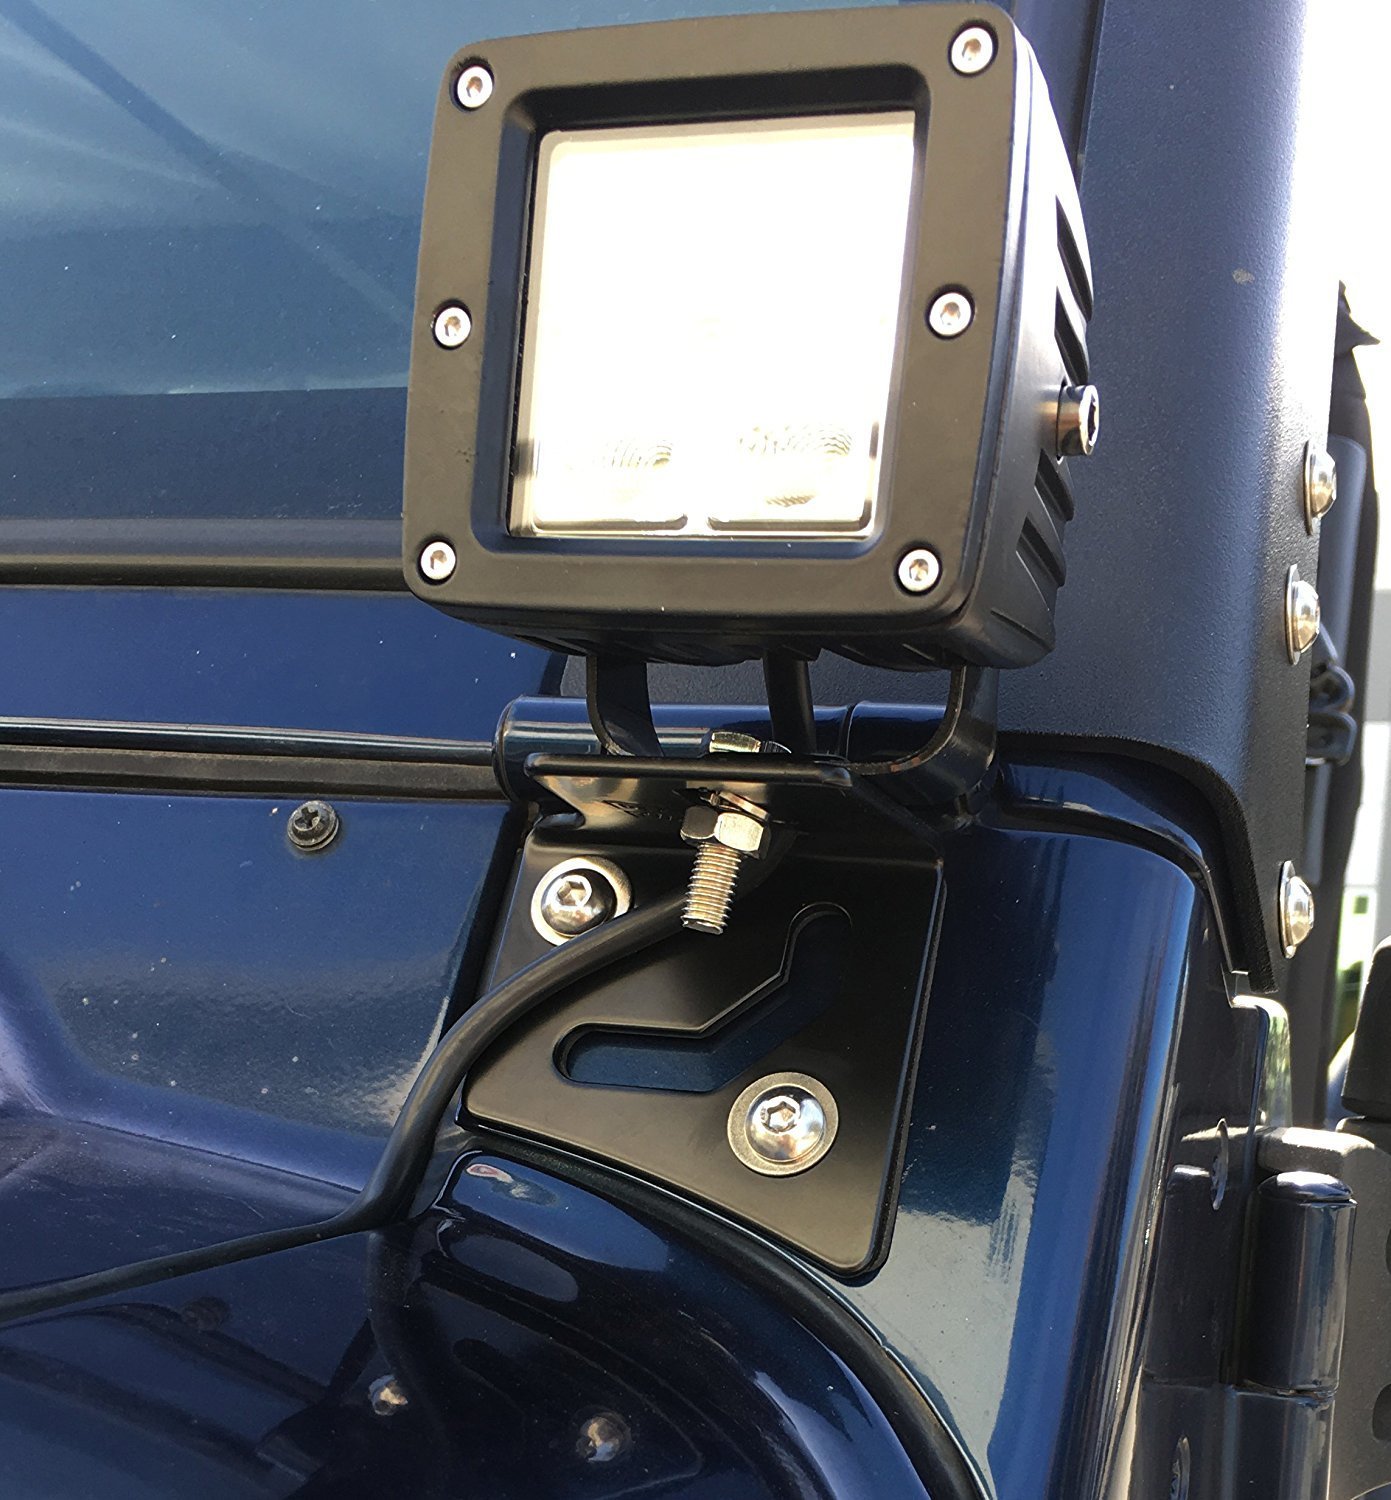 Compatible with the New 2018-2019 Jeep Wrangler JL /& 2020 Gladiator JT GS Power A-Pillar Windshield Hinge Mount Brackets for Mounting Auxiliary Off Road LED HID Halogen Fog Work Lights